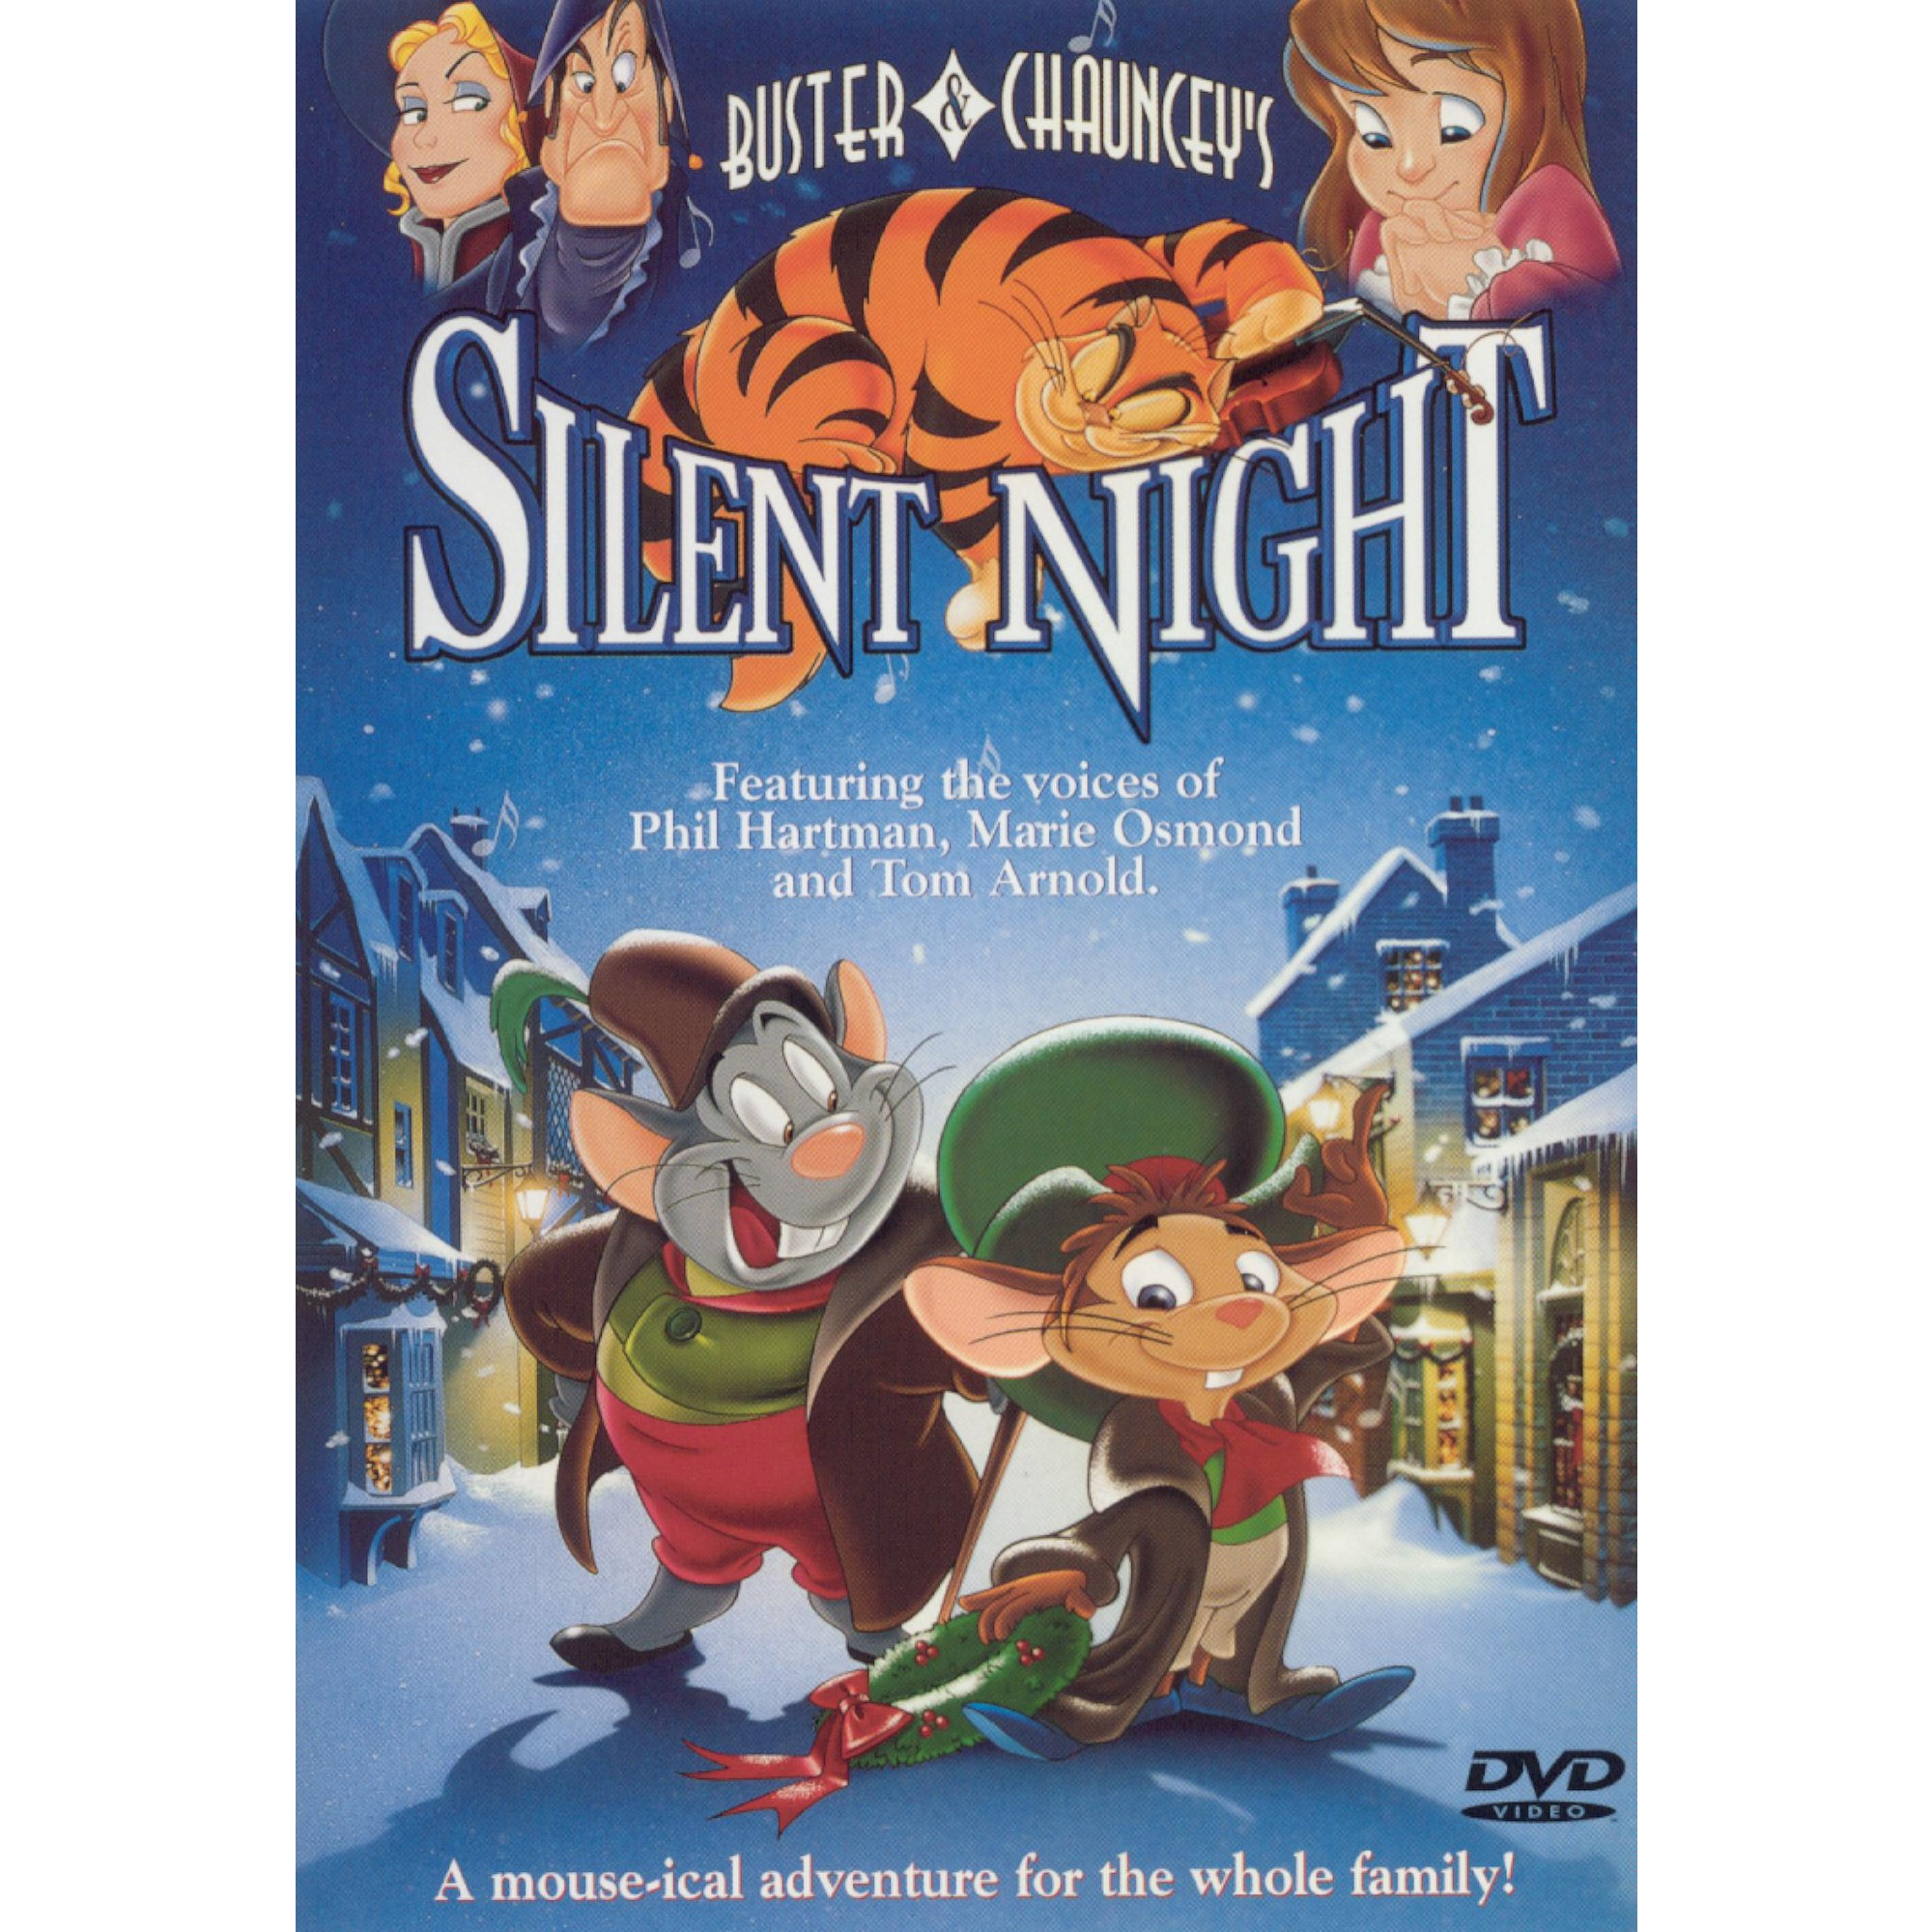 Buster And Chauncey S Silent Ht Dvd 2000 In 2021 Silent Night Movie Kids Christmas Movies Busters